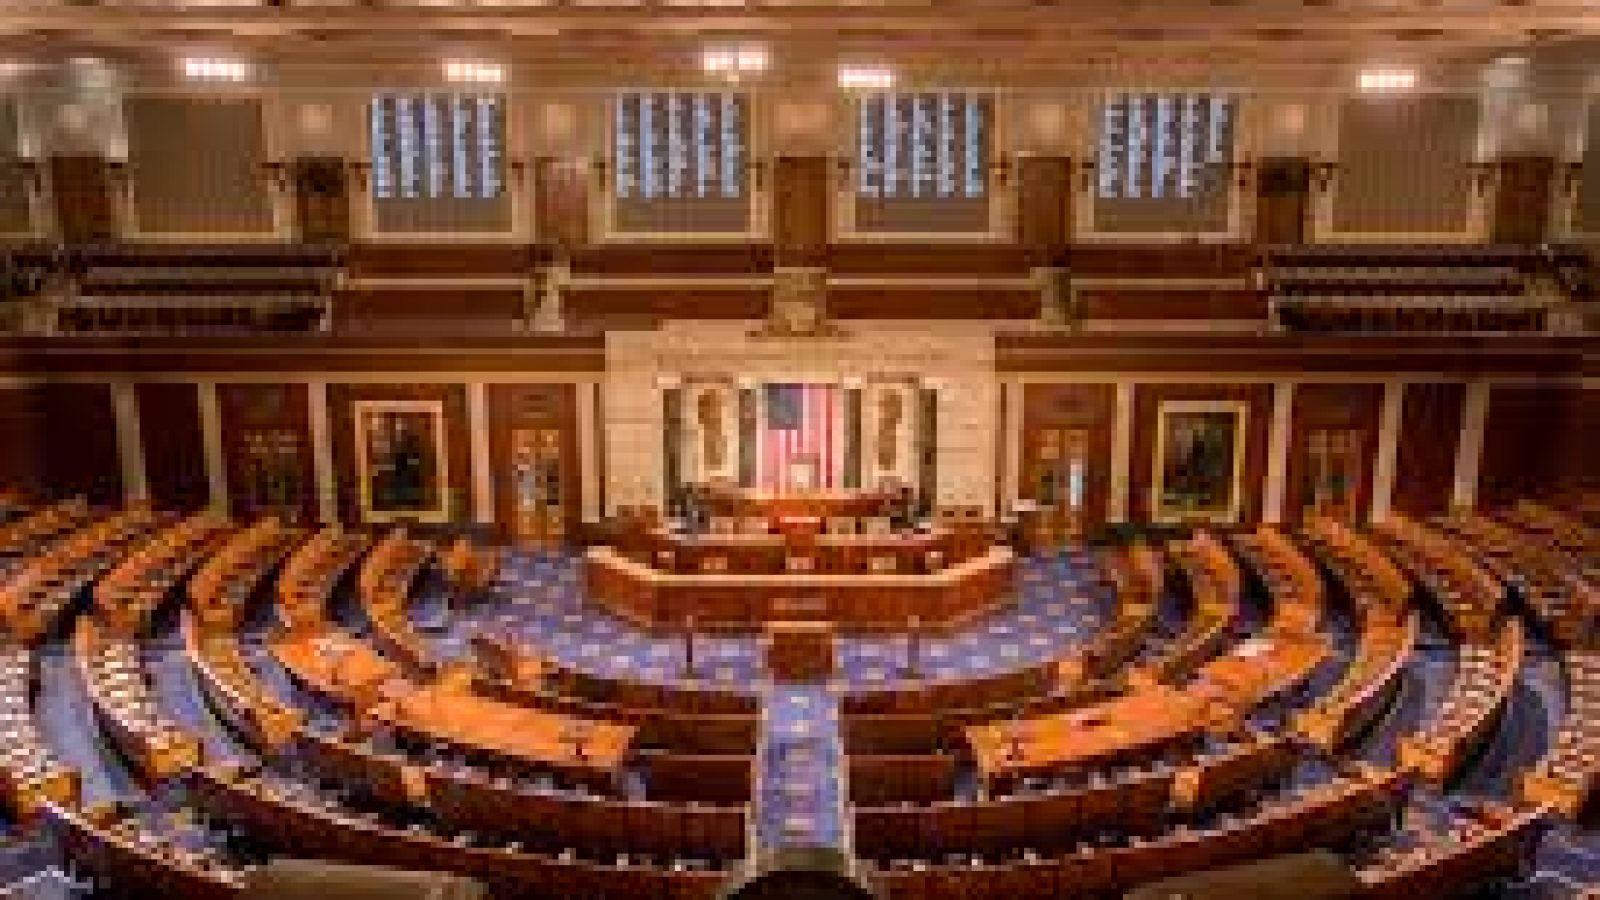 U.S. House of Representatives Chamber